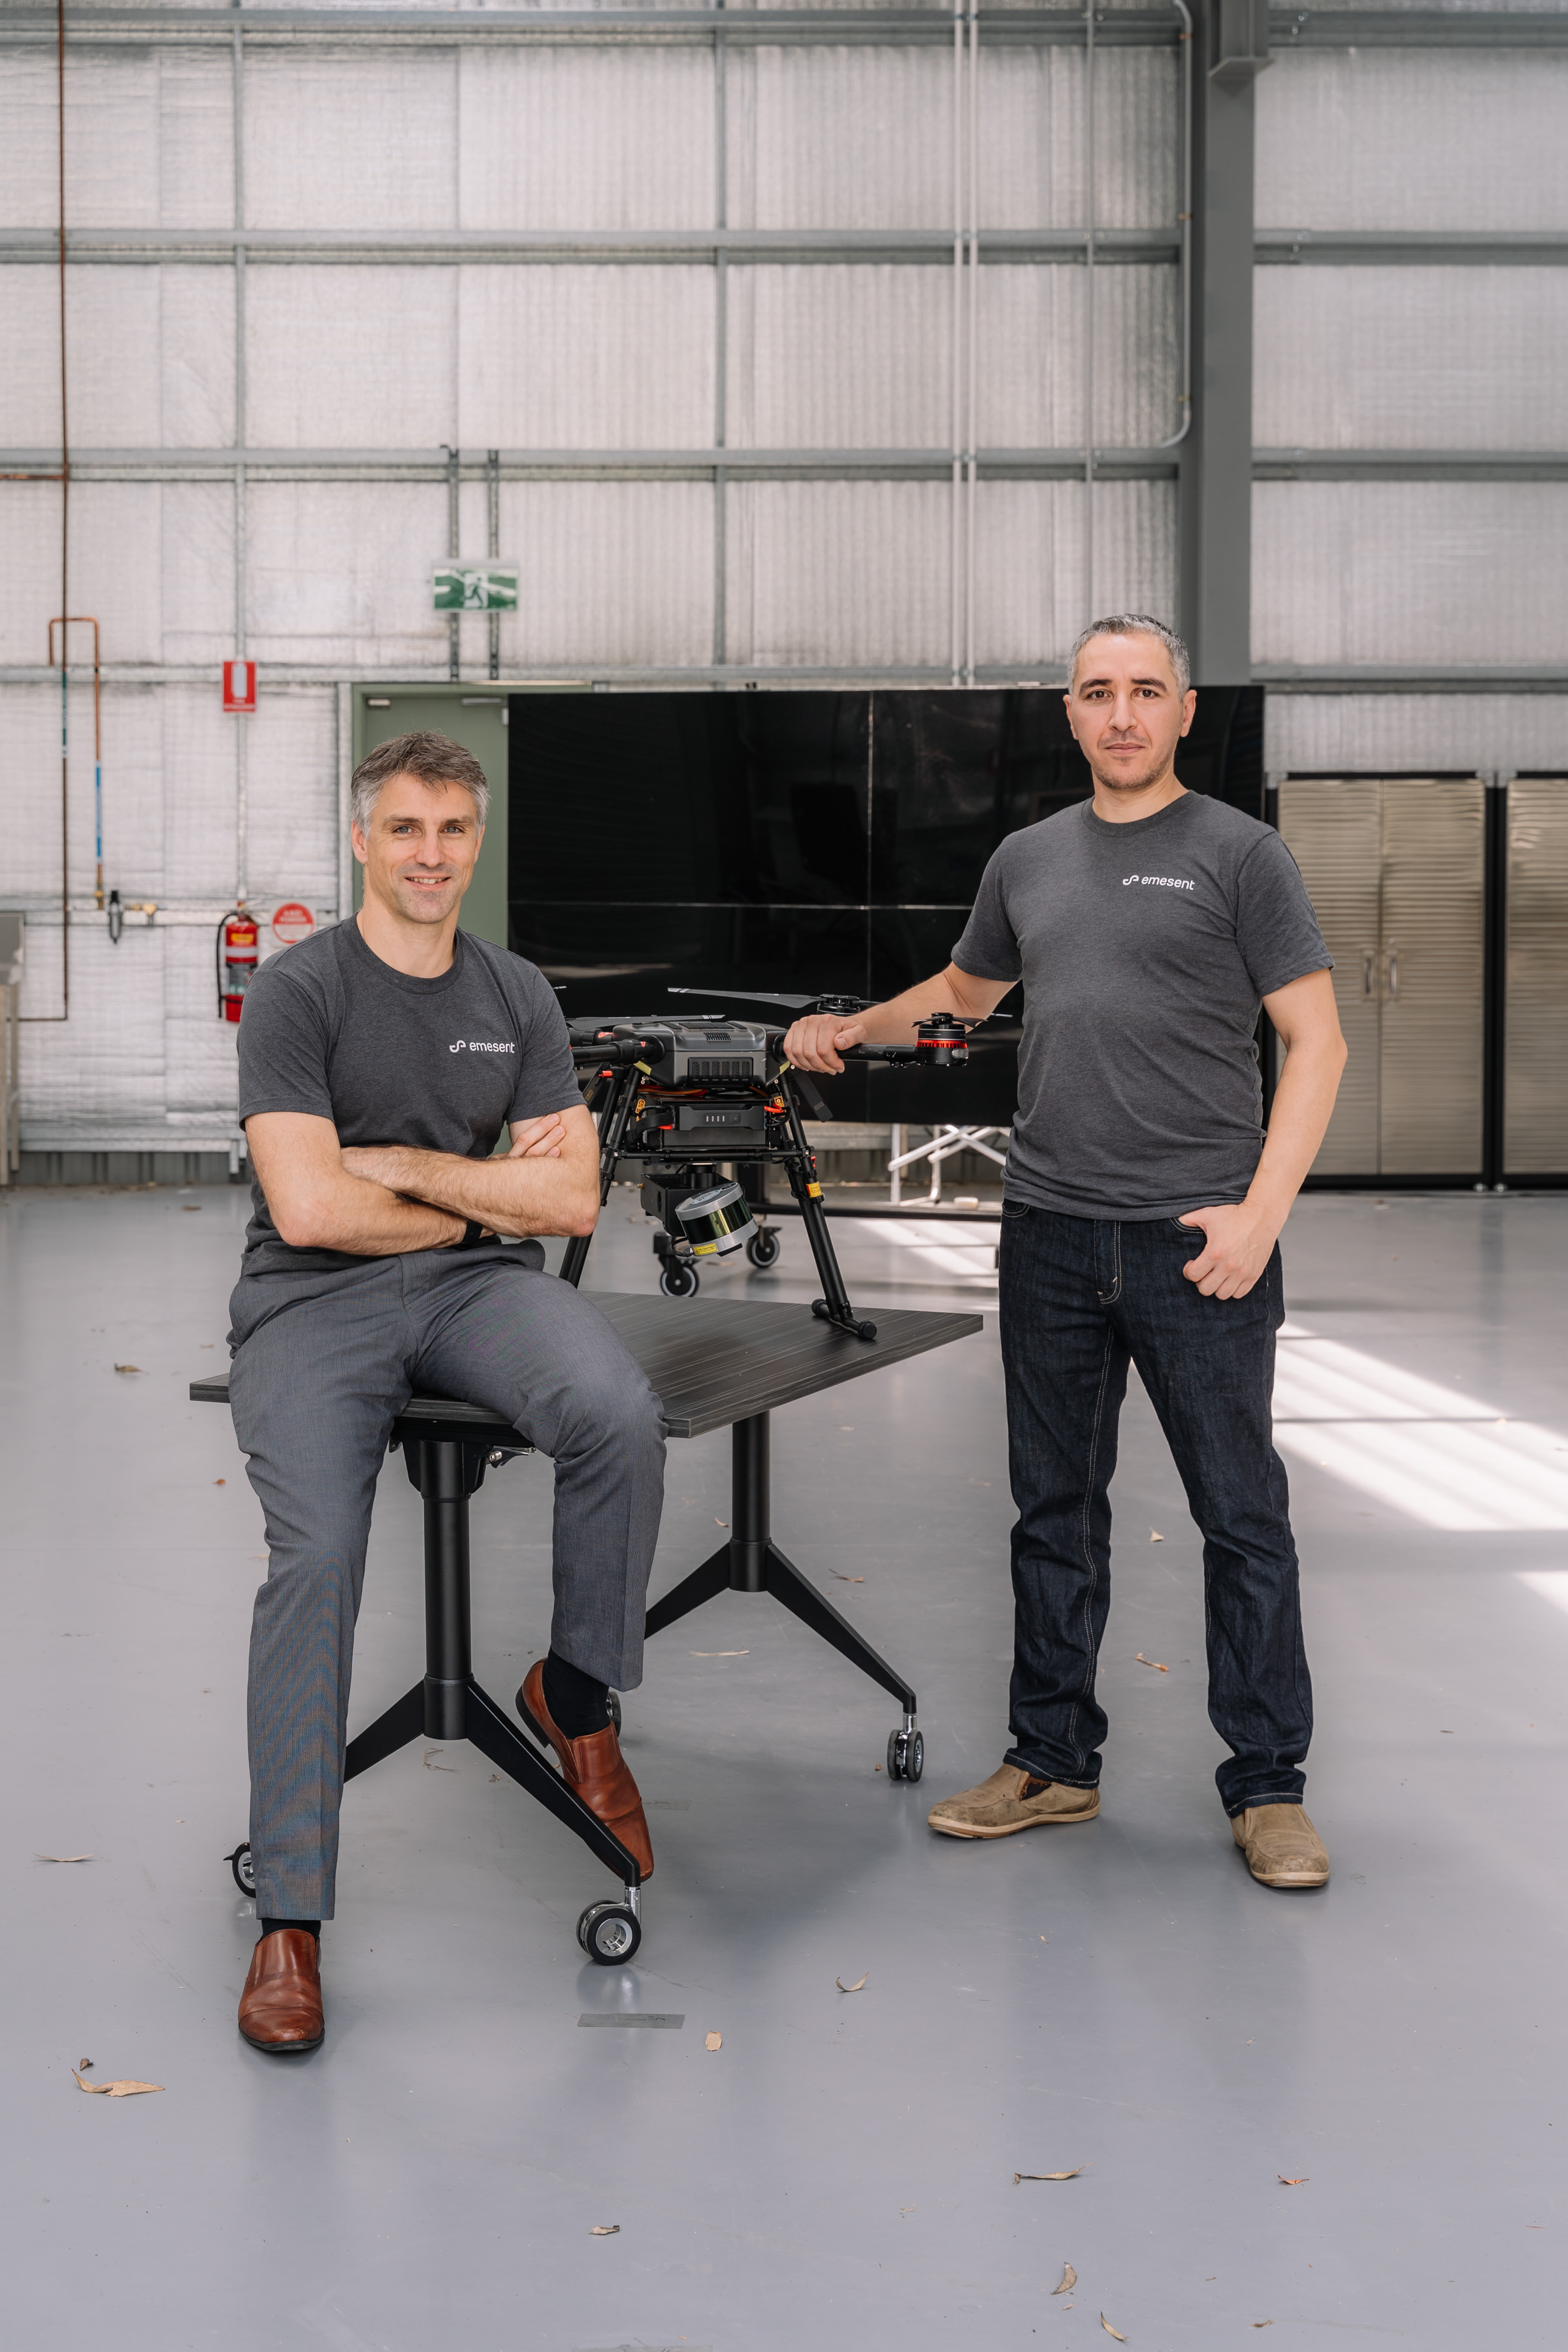 Stefan Hrabar and Farid Kendoul standing next to a chair with a drone resting on it.